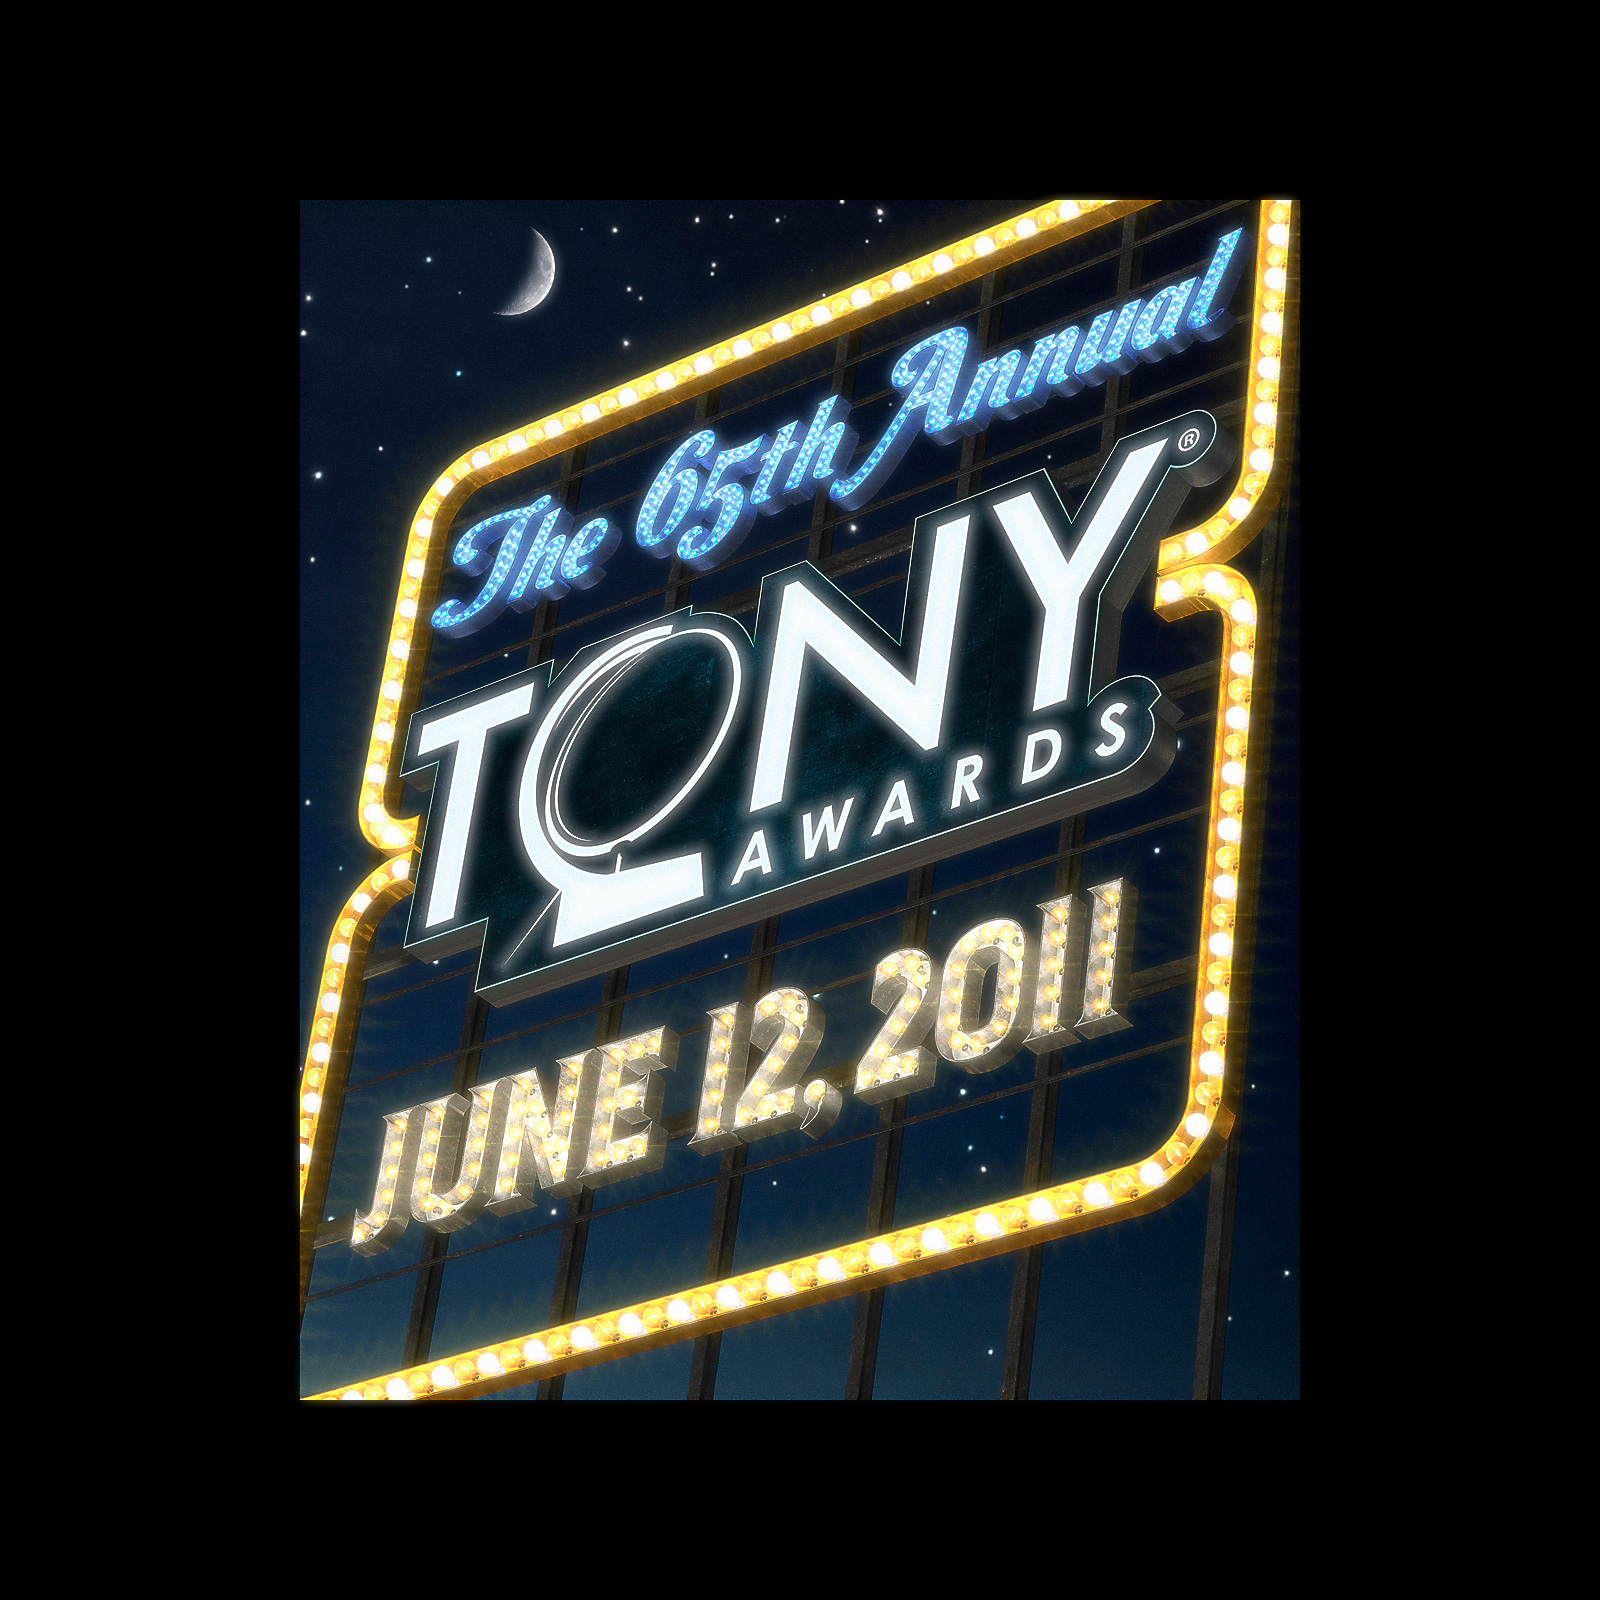 Tony Playbill